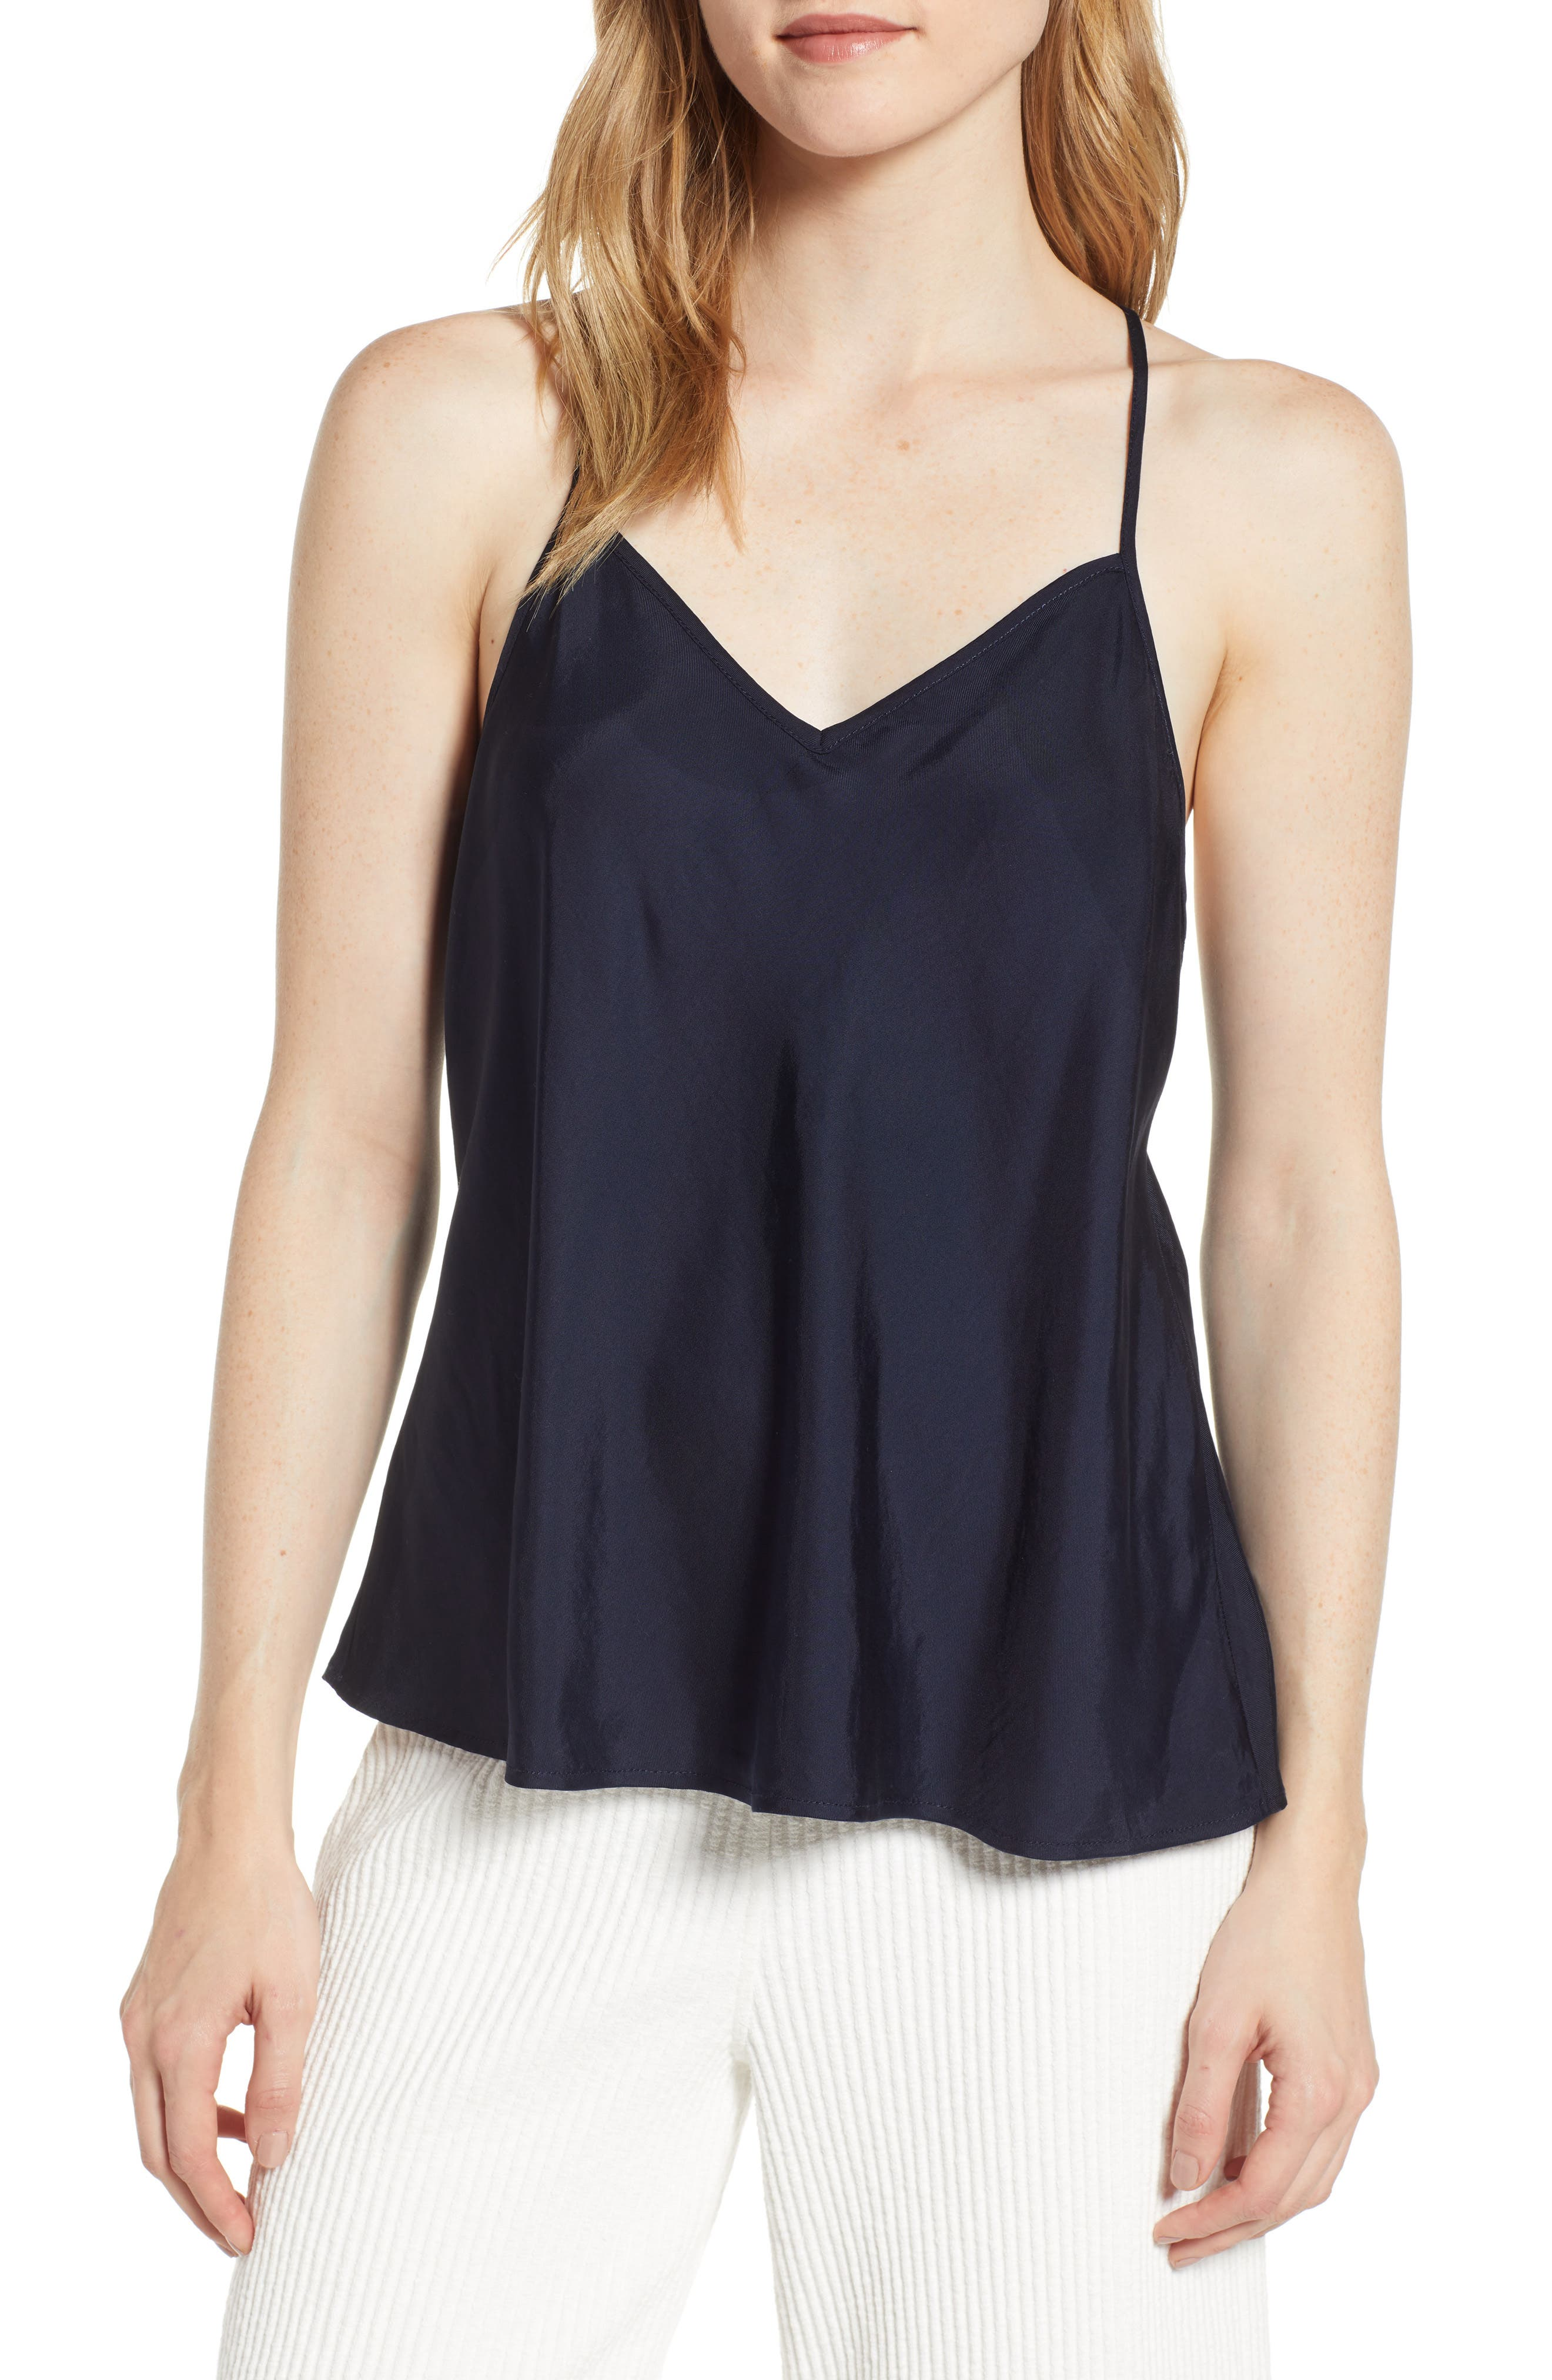 Lou & Grey Shimmer Twill Racerback Camisole Top, Blue